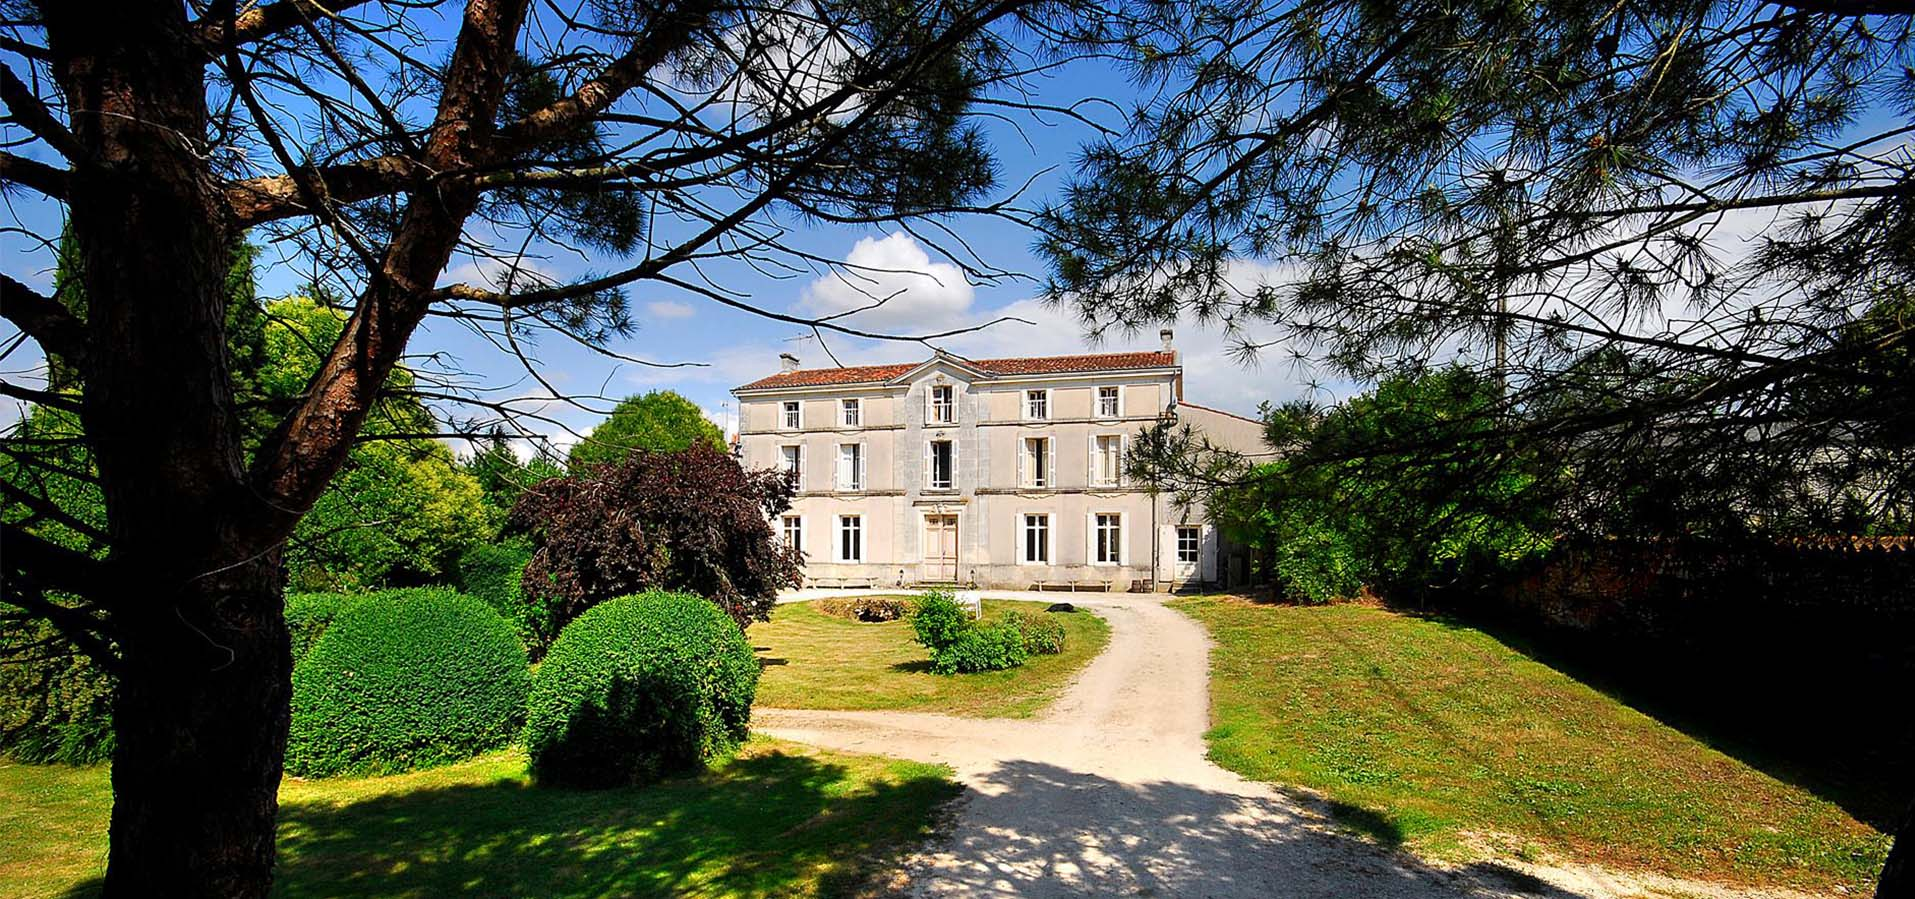 The domaine, haven in Charente maritime